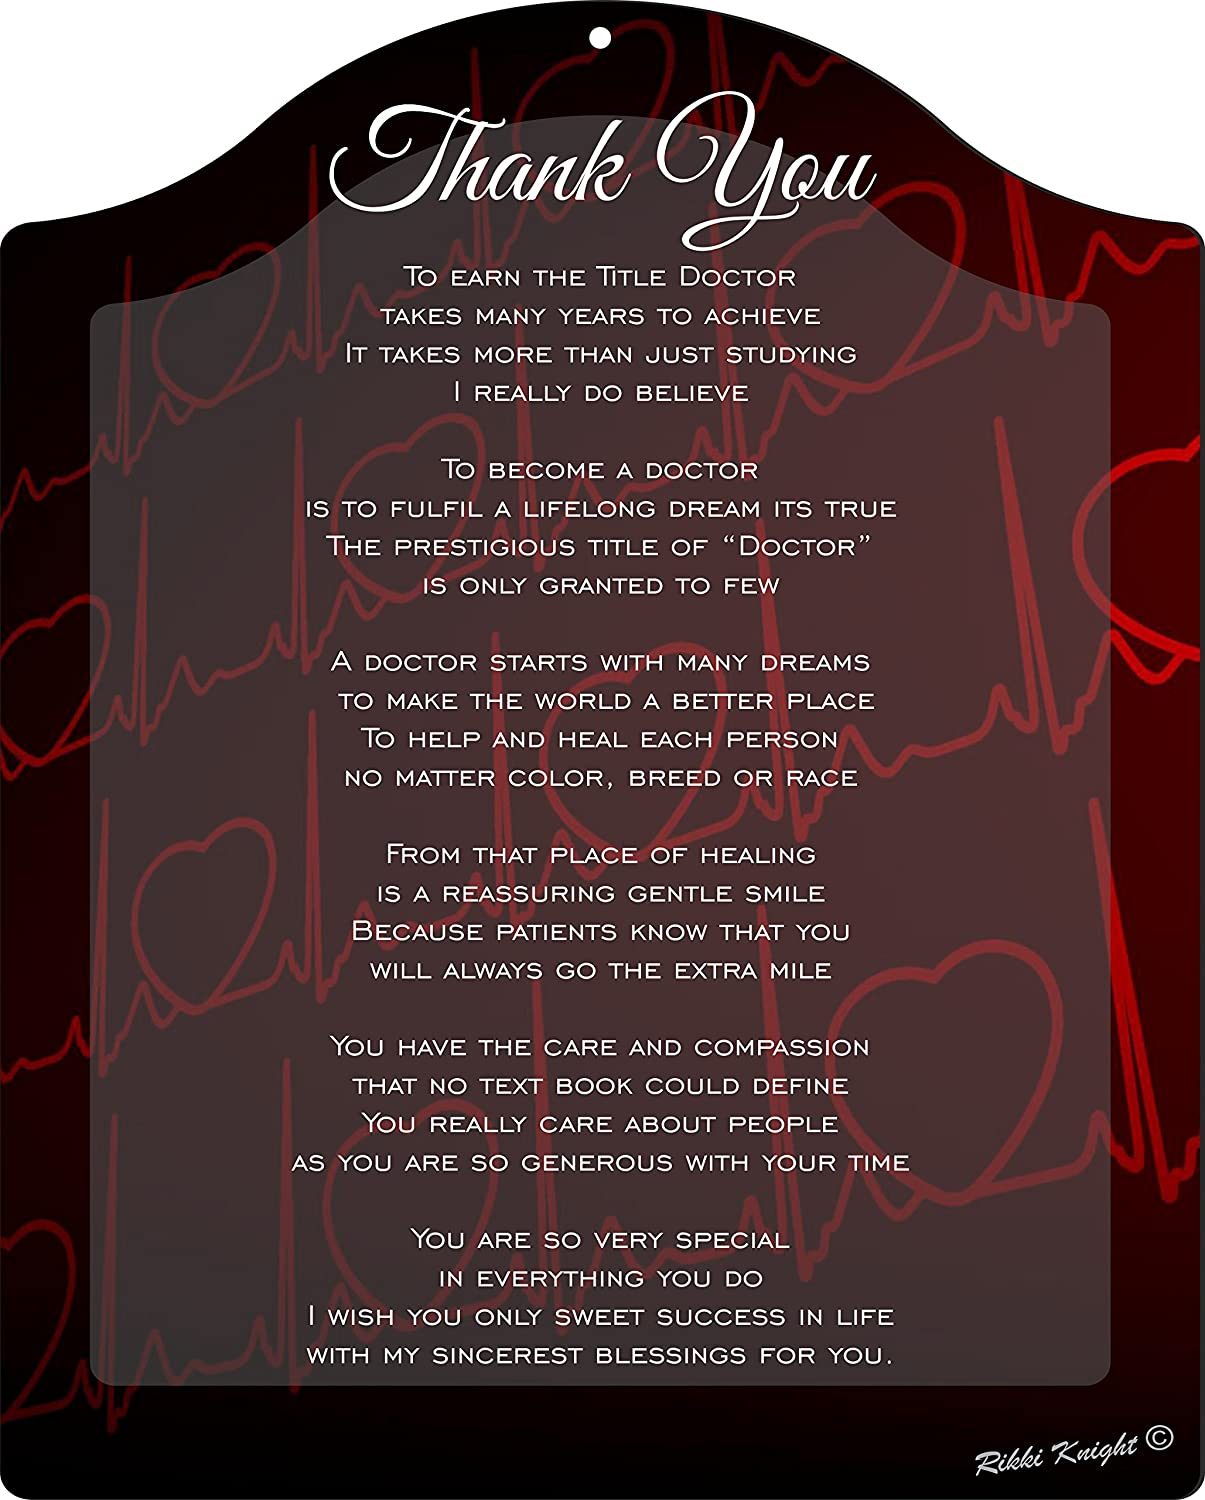 Thank you Doctor - Heartbeat Touching 8x10 Poem Plaque with Arch Top